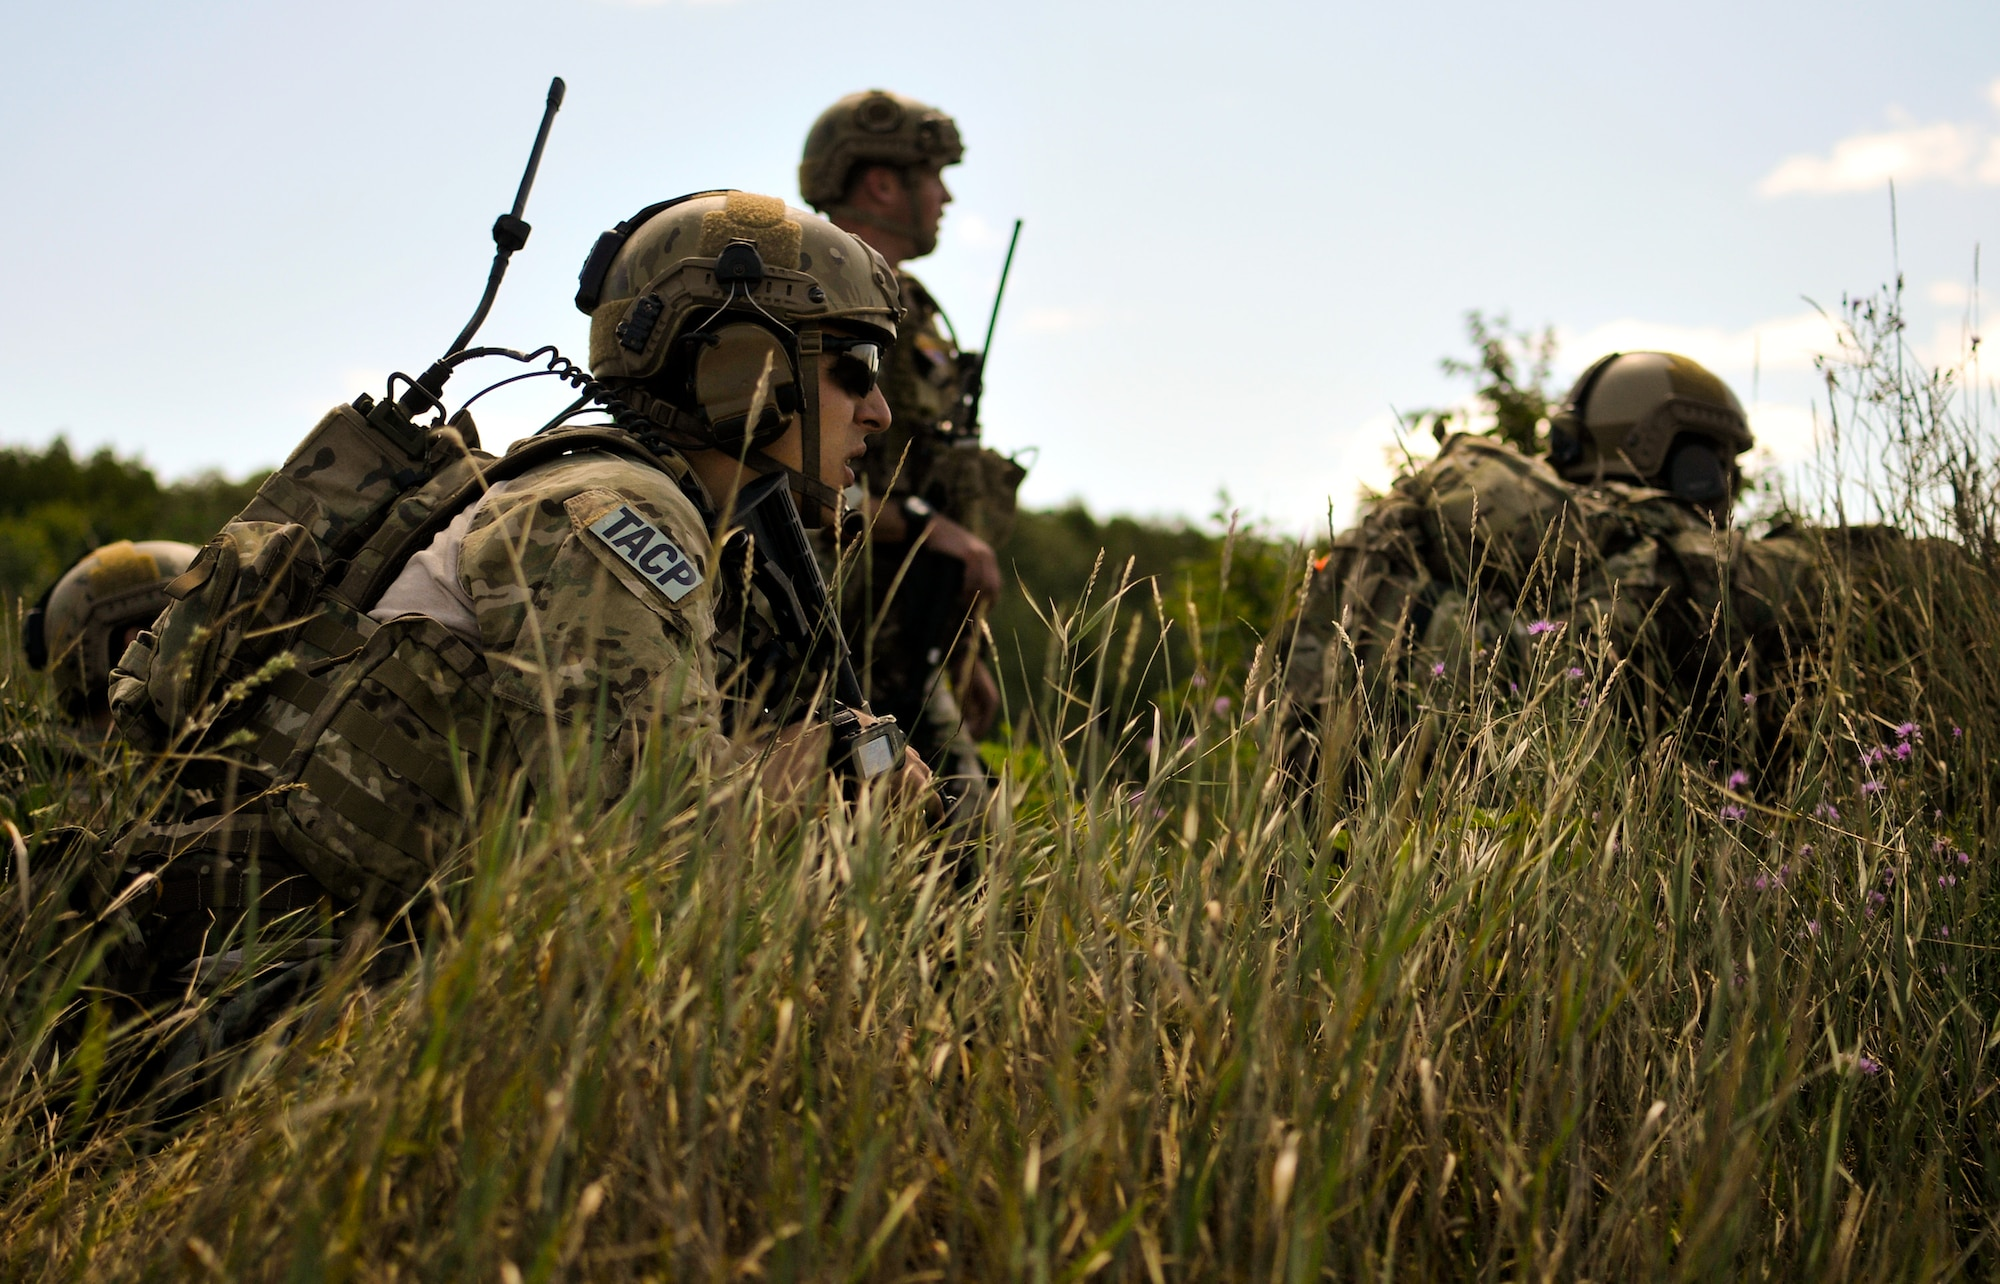 Tactical air control party specialists with the 169th Air Support Operations Squadron survey an enemy-controlled landing zone before calling in close-air support  Aug. 14, 2014, at Operation Northern Strike in Grayling Air Gunnery Range, Grayling, Mich. Northern Strike was a 3-week exercise that demonstrated the combined power of joint and multinational air and ground forces. TACPs with the Air National Guard's 169th ASOS from Peoria, Ill., and more than 5,000 other armed forces members from 12 states and two coalition nations participated in the combat training. (U.S. Air National Guard photo/Staff Sgt. Lealan Buehrer)